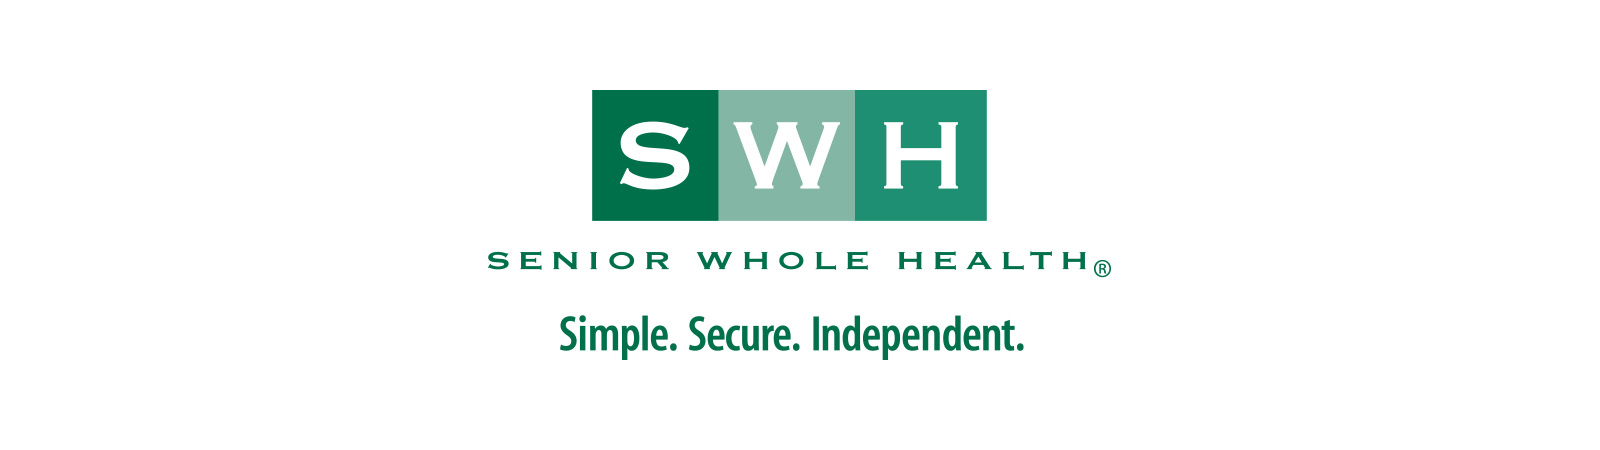 Senior Whole Health logo image